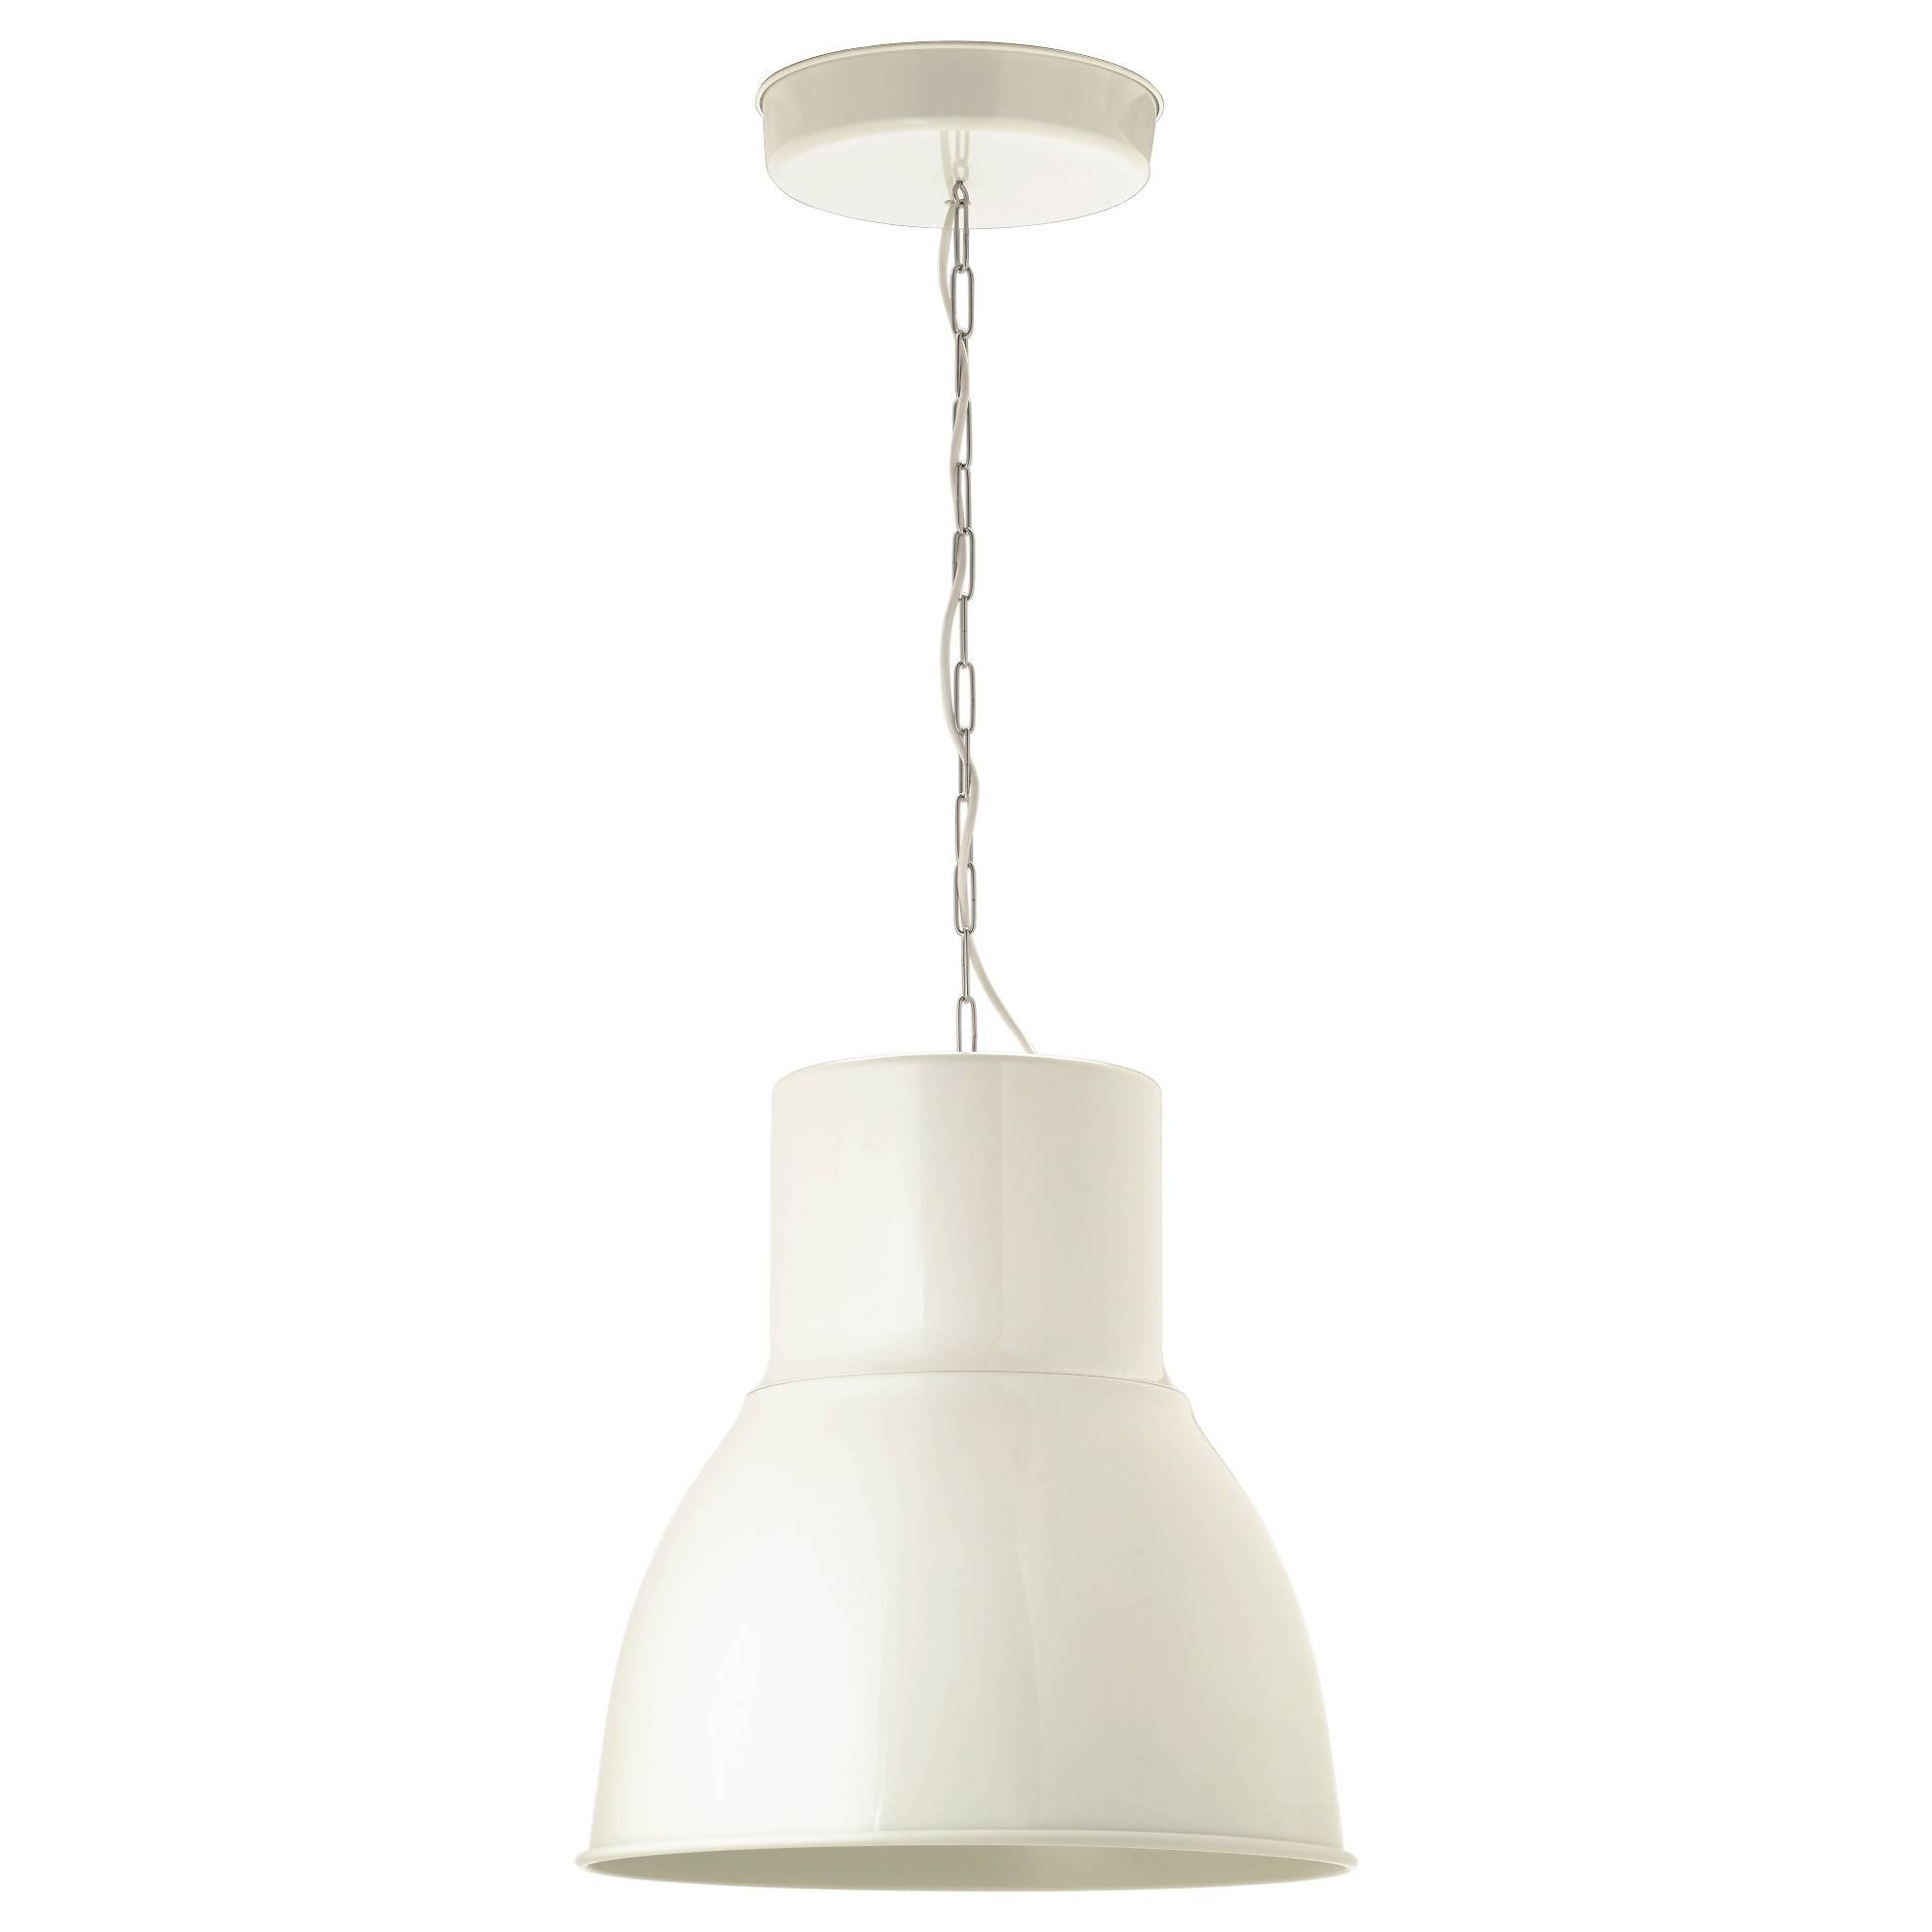 Ceiling Lights & Lamps - Ikea for Ikea Globe Pendant Lights (Image 2 of 15)